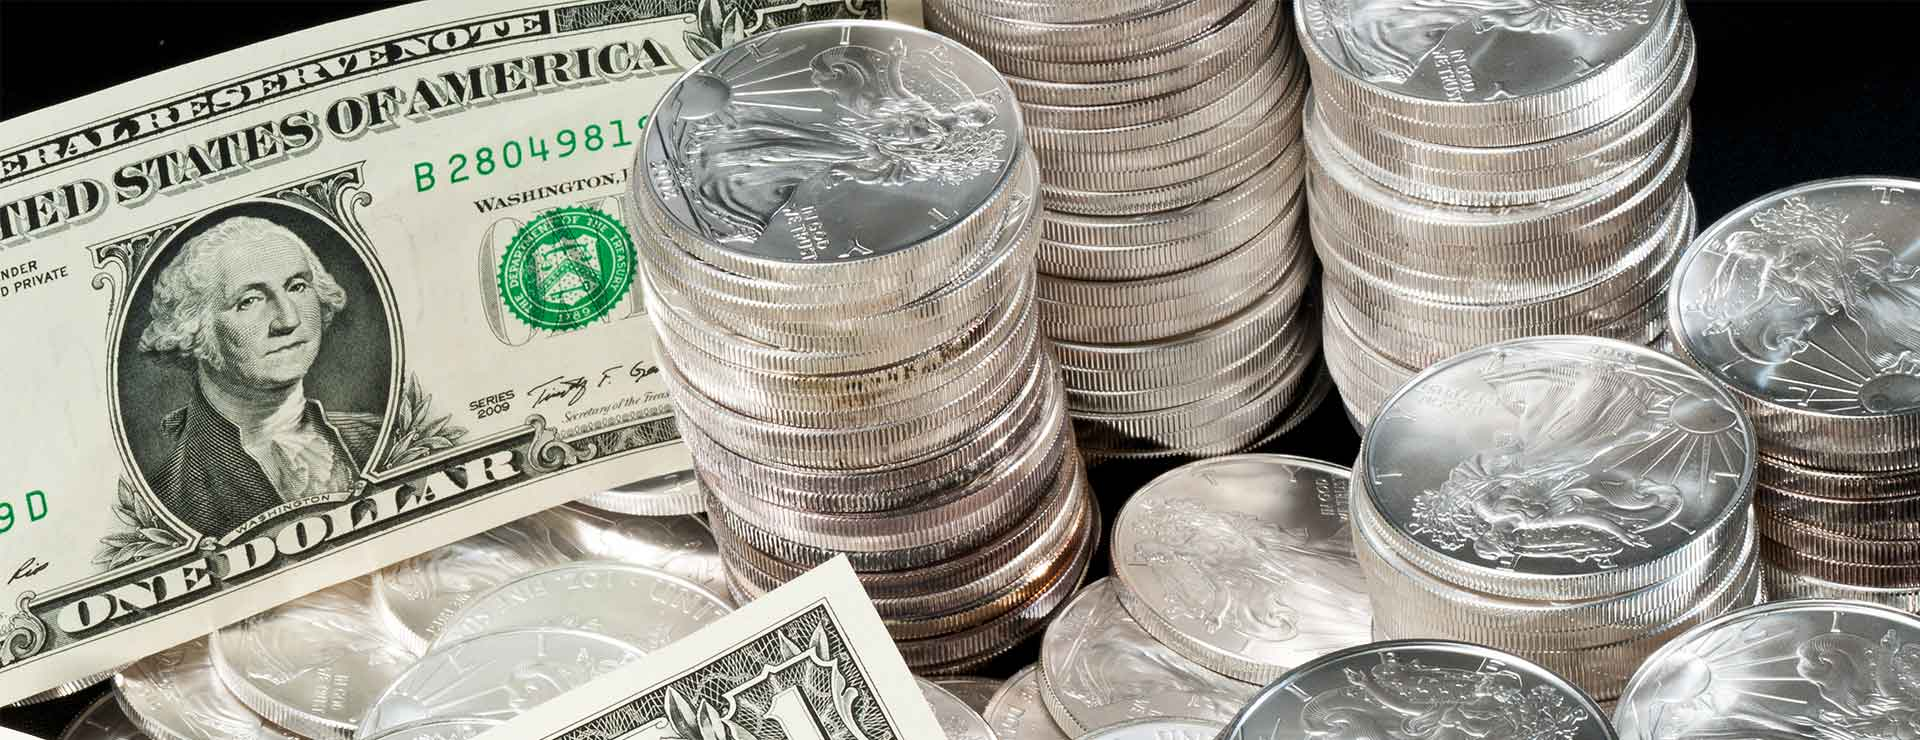 goldinwealth-american-silver-coins